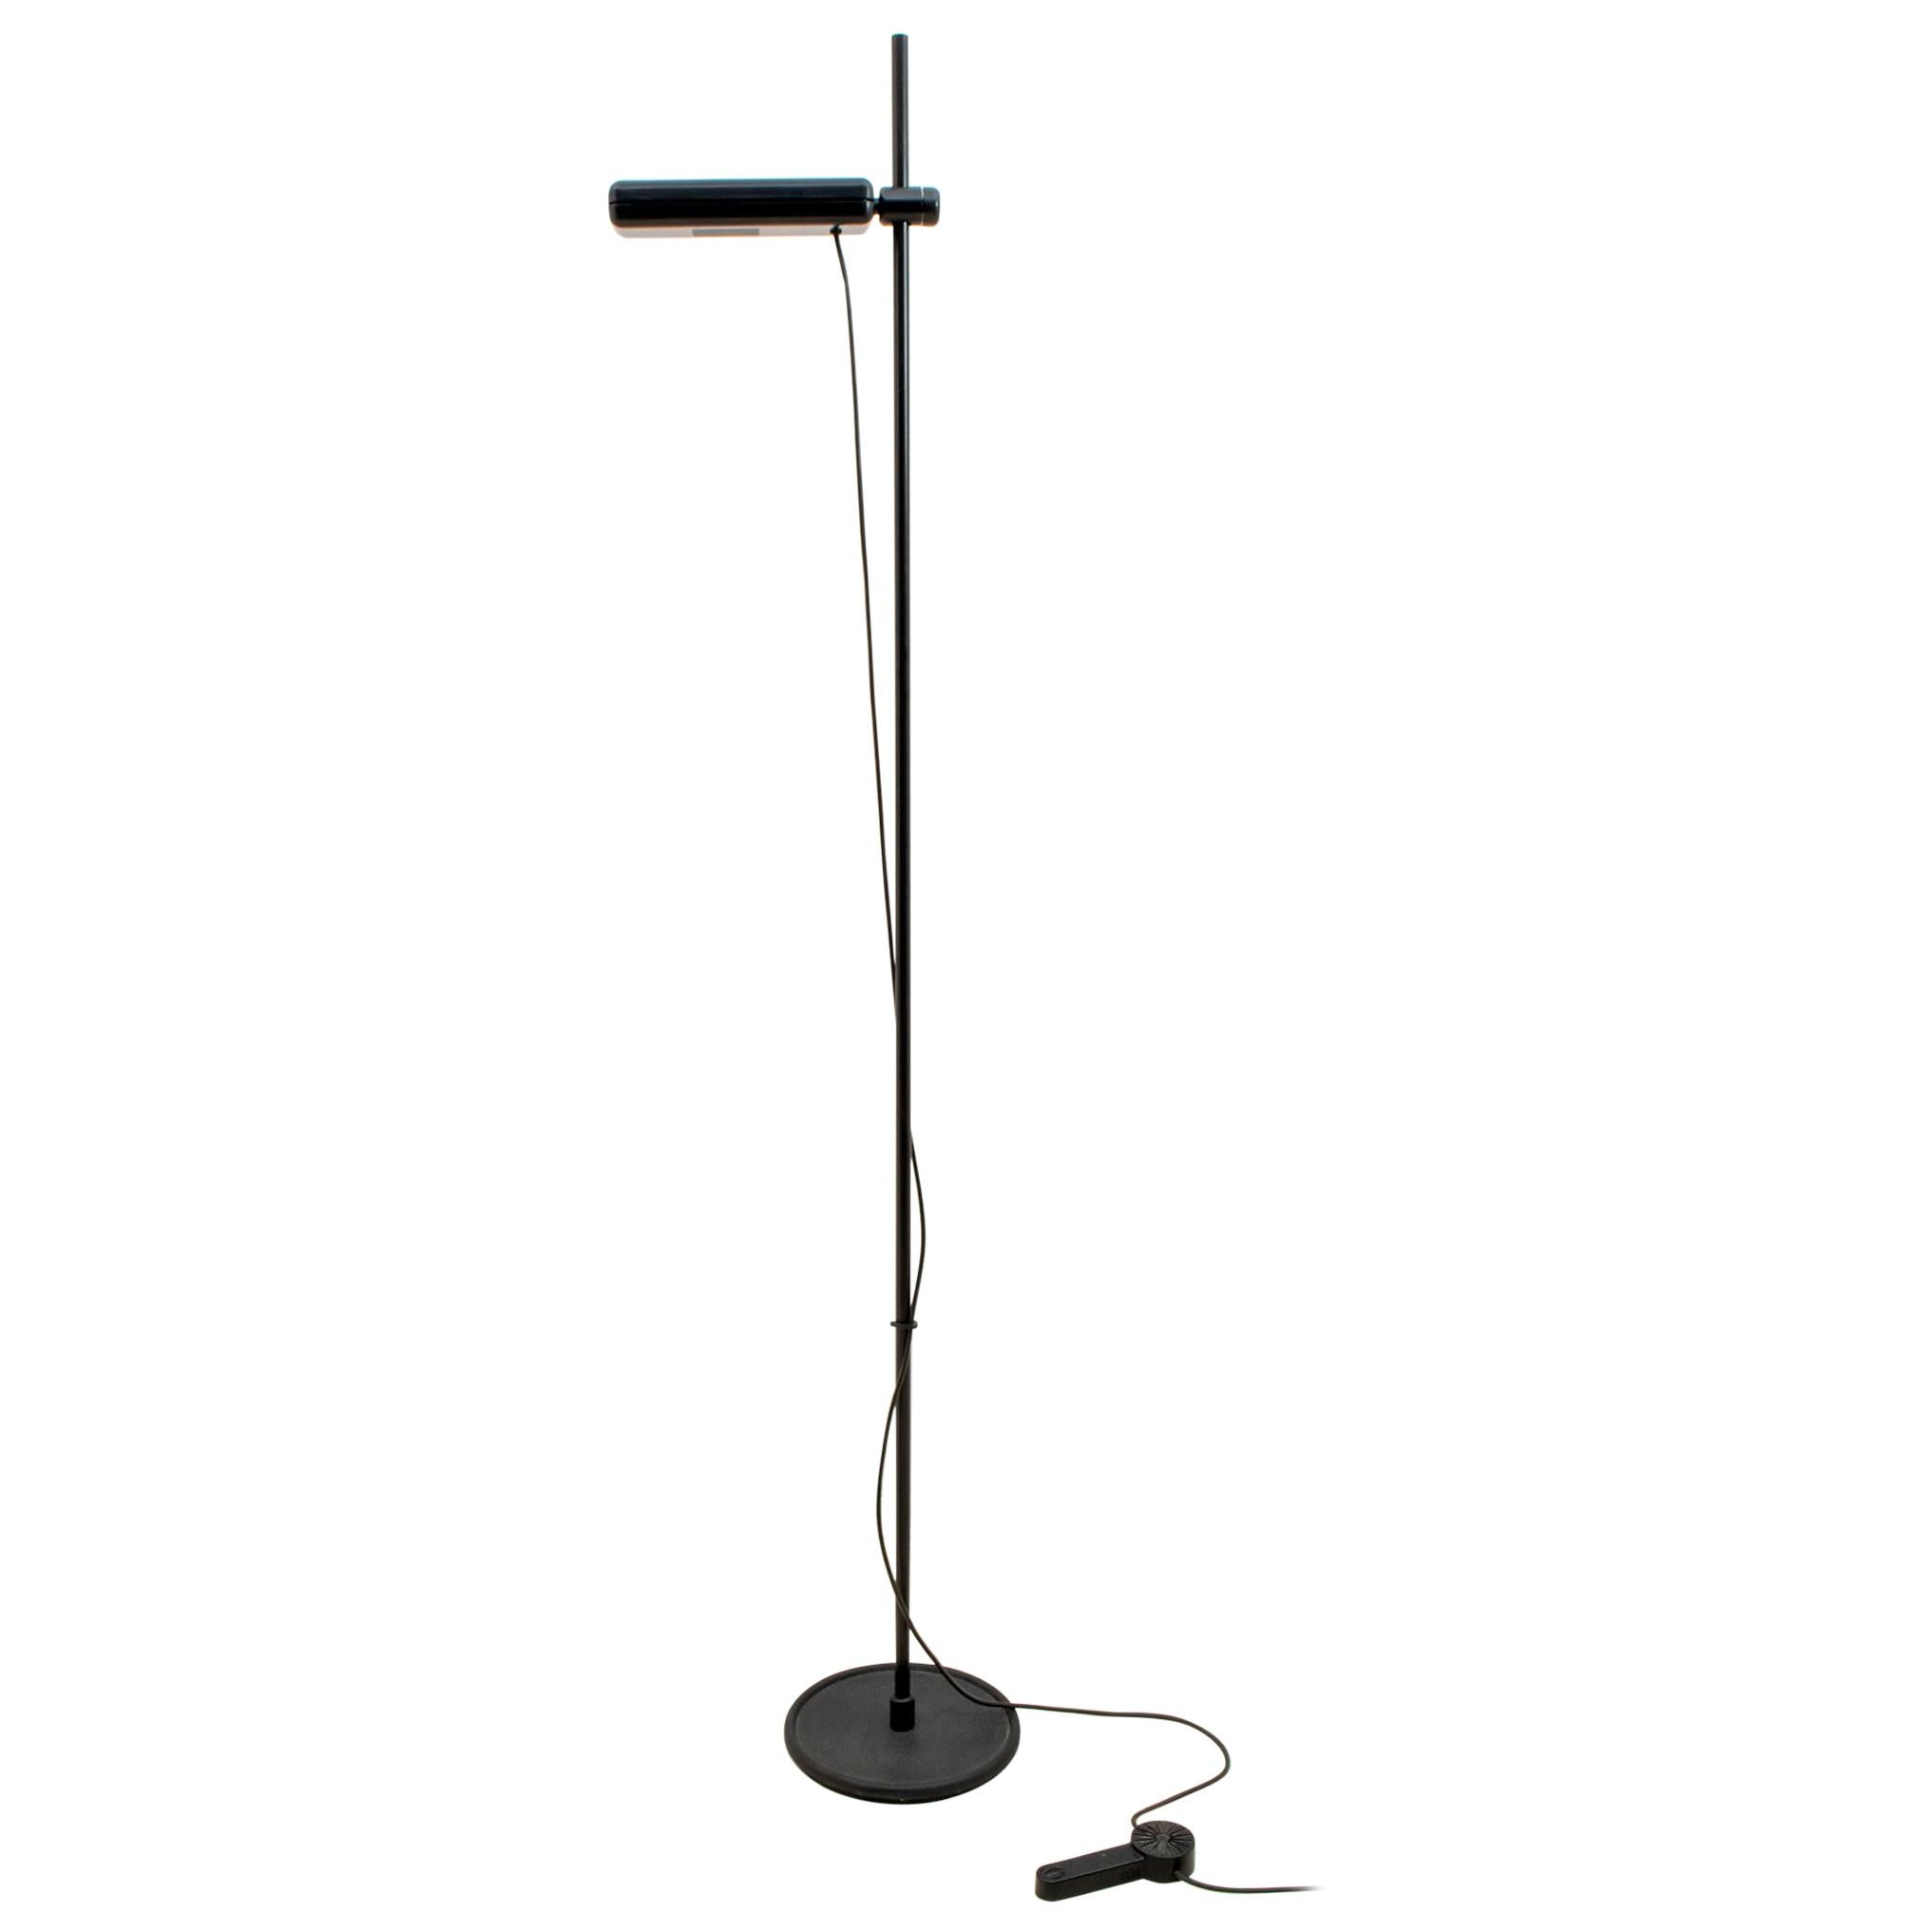 Gianfranco Frattini Postmodern Italian RT3 Floor Lamp for Relco Milano, 1980s